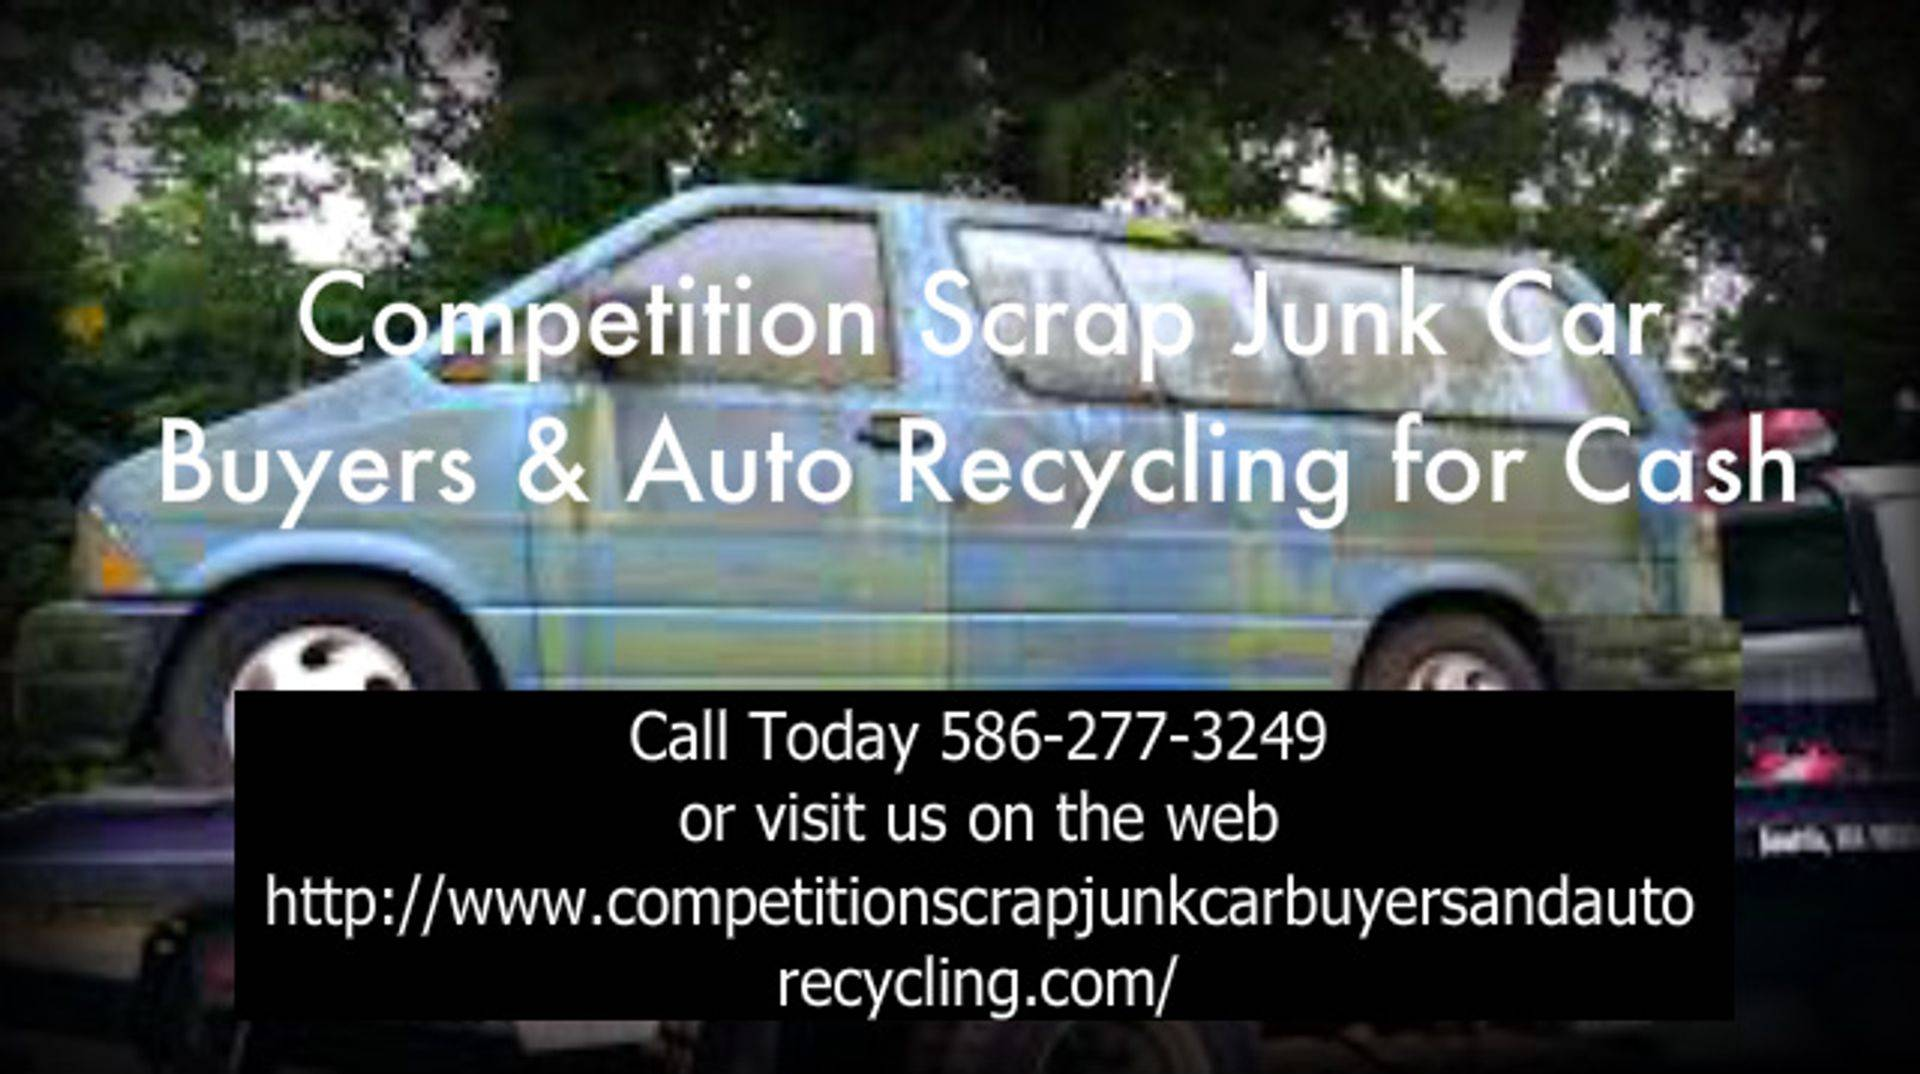 we buy scrap cars in ,48034,48037,48075,48086,48237,48069,48083,48084,48098,48099,48307,48308,48309,48067,48068,48073,48322,48323,48324,48325,48336,48215, 48120,48121,48122,48123,48124,48128,48236,48225,